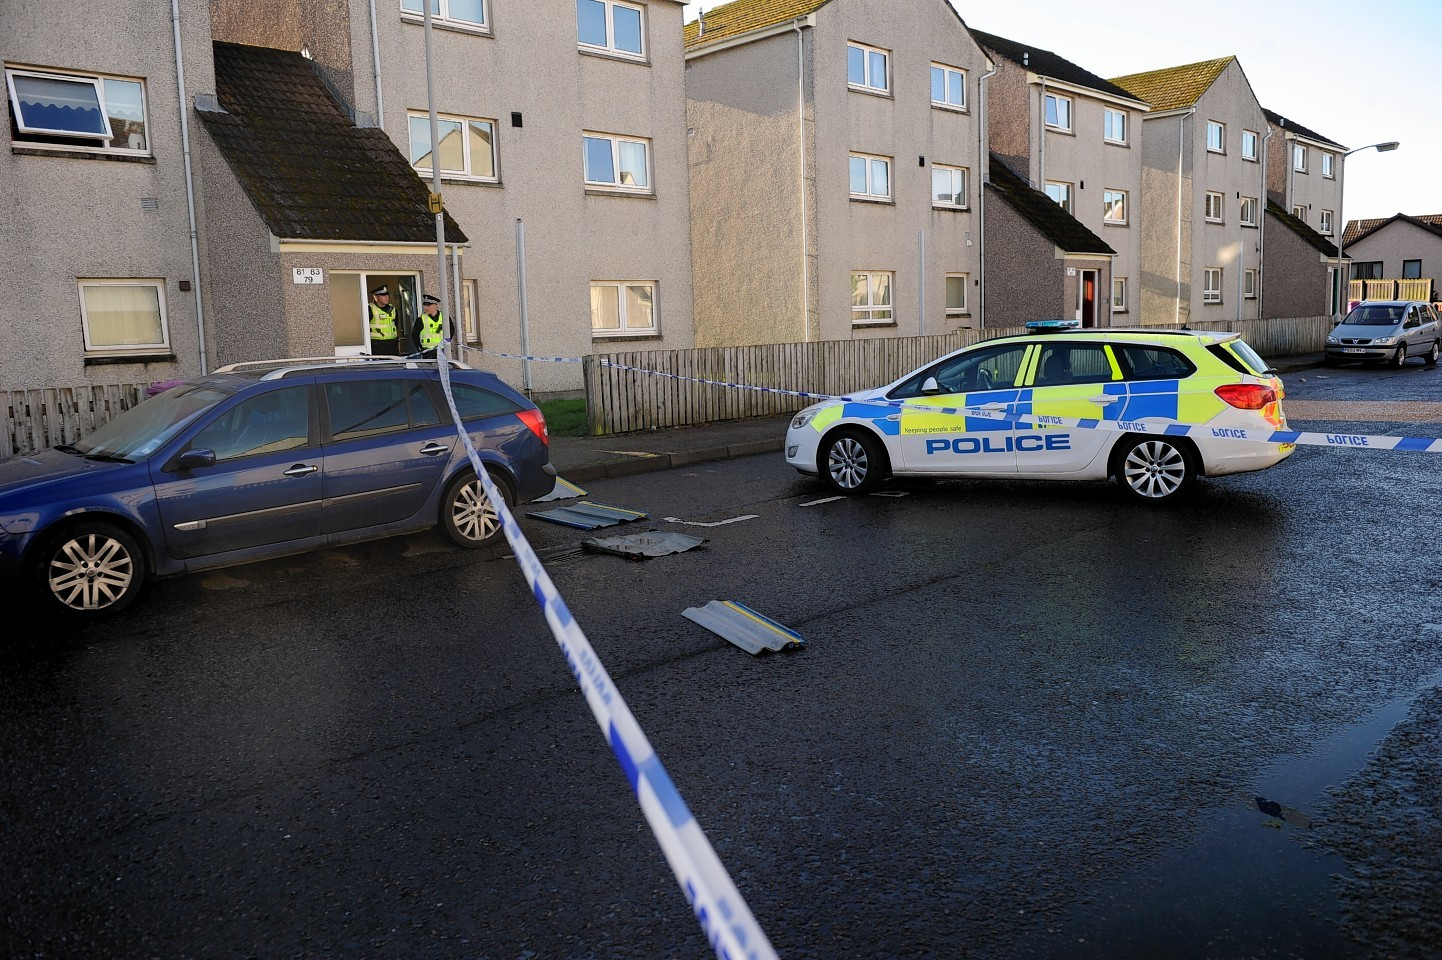 Police at the scene of the incident in Elgin